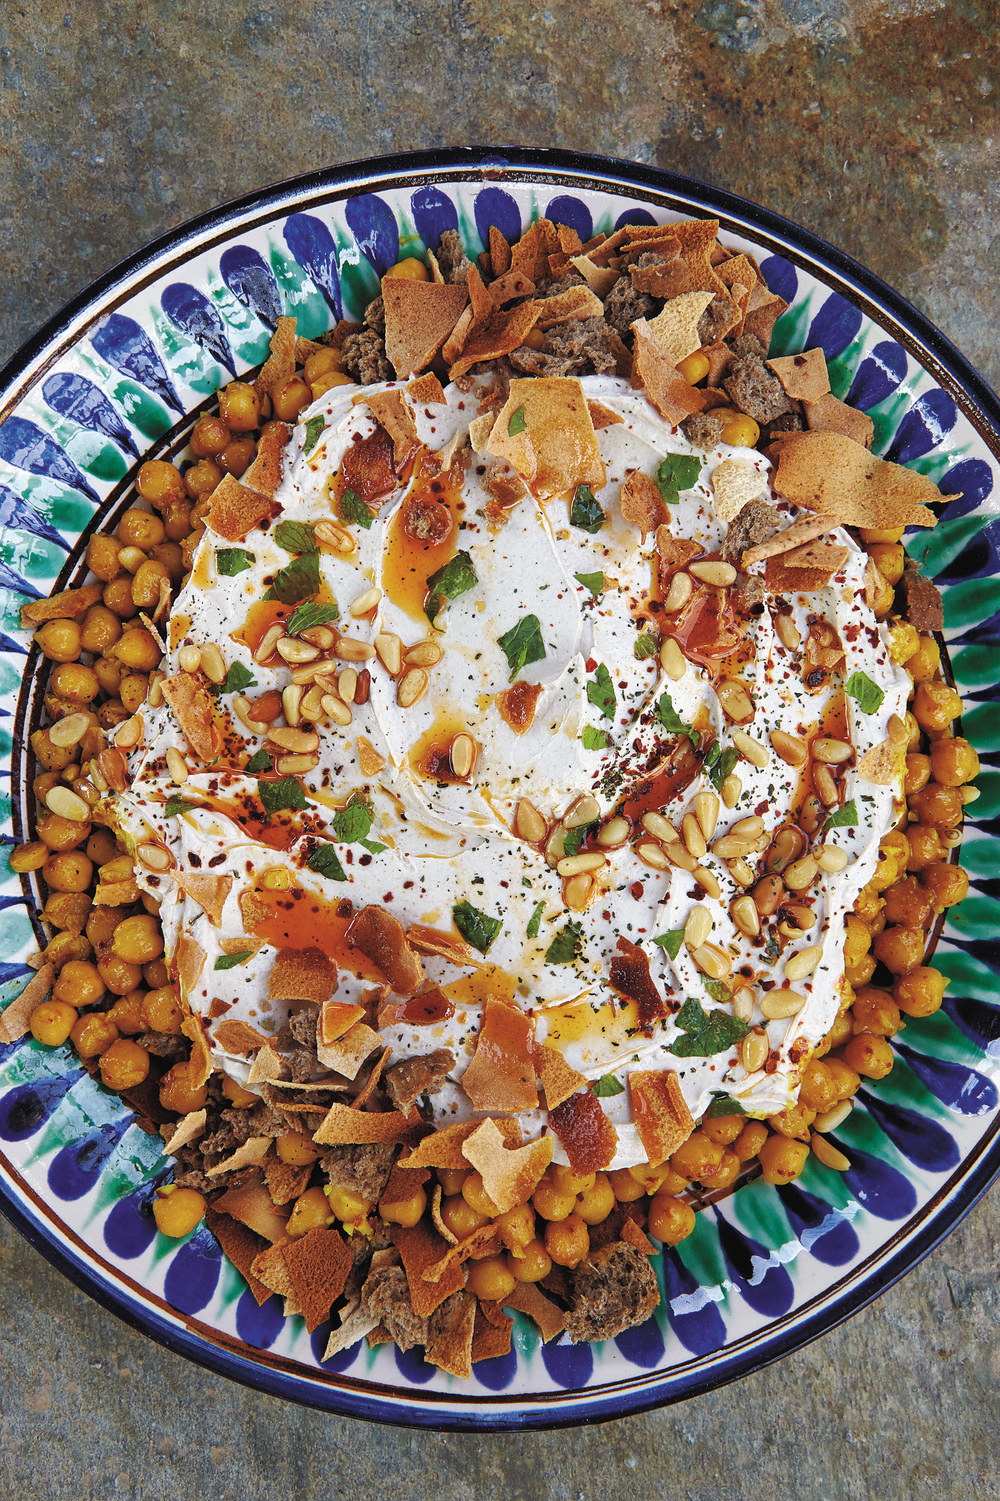 Aglaia's Chickpeas and Toasted Bread with Yogurt-Tahini Sauce (Fattet Hummus)